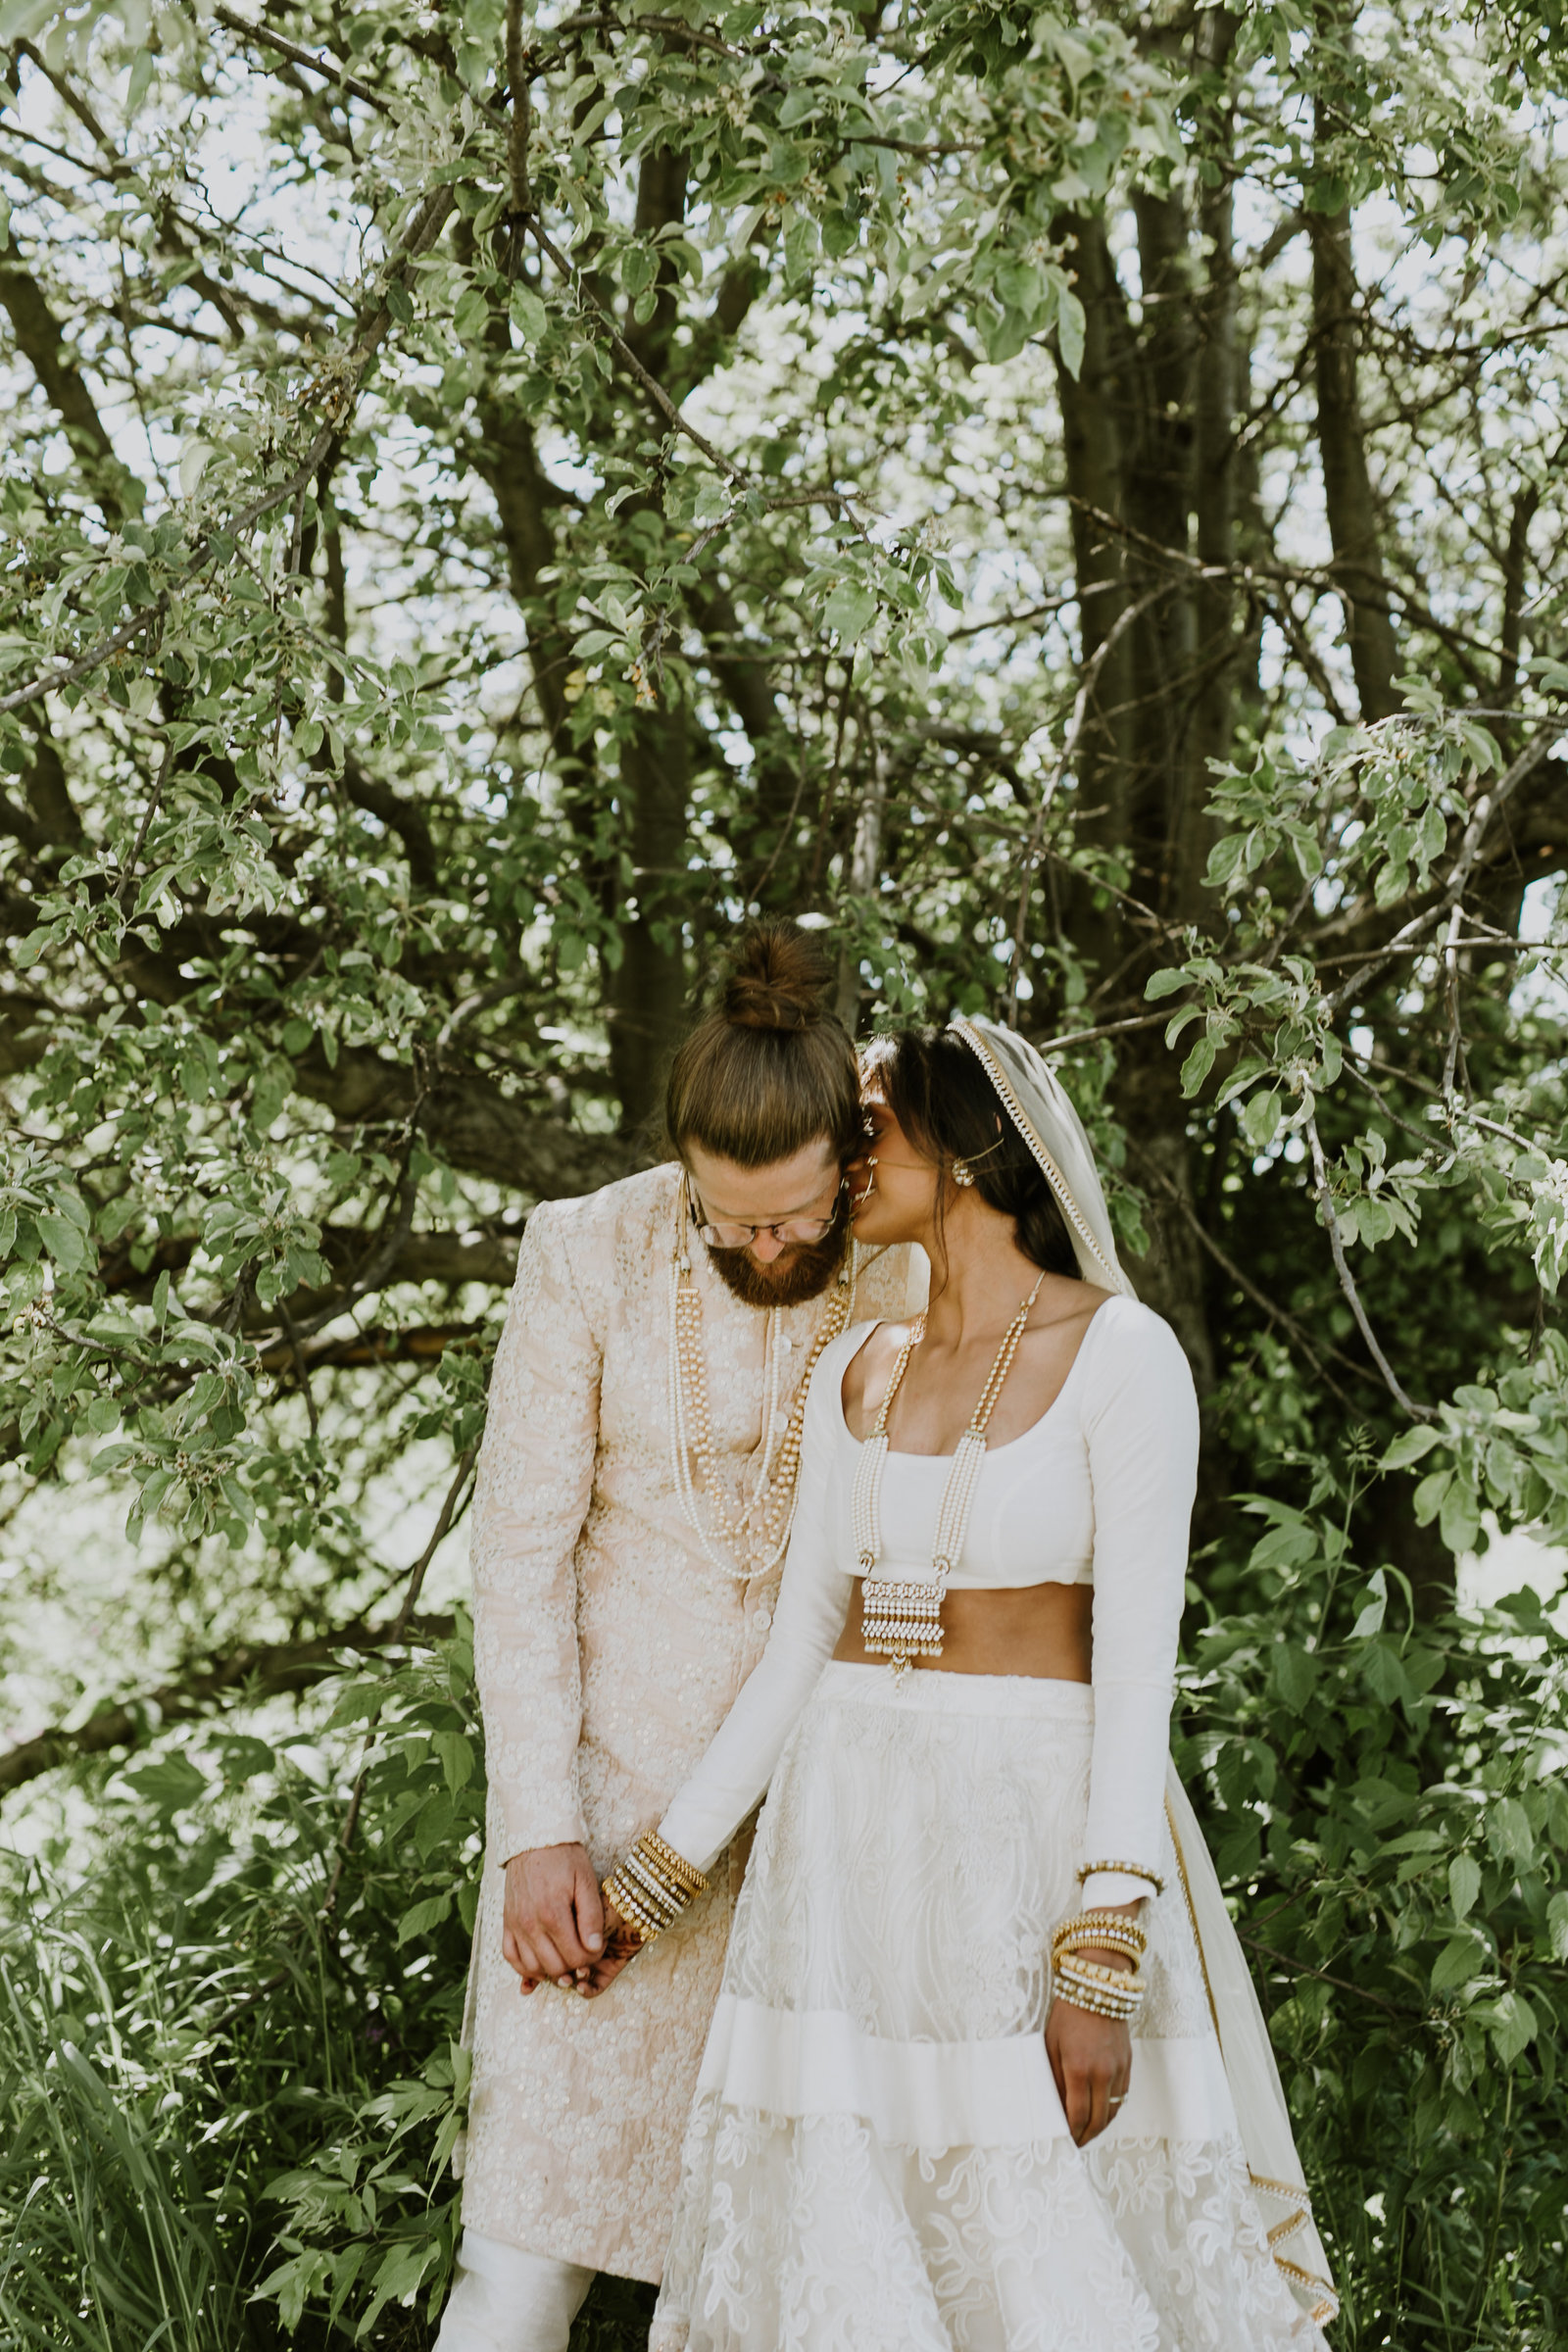 ShanelleAustin-wedding-johnandsamanthabutlerphotovideo-234